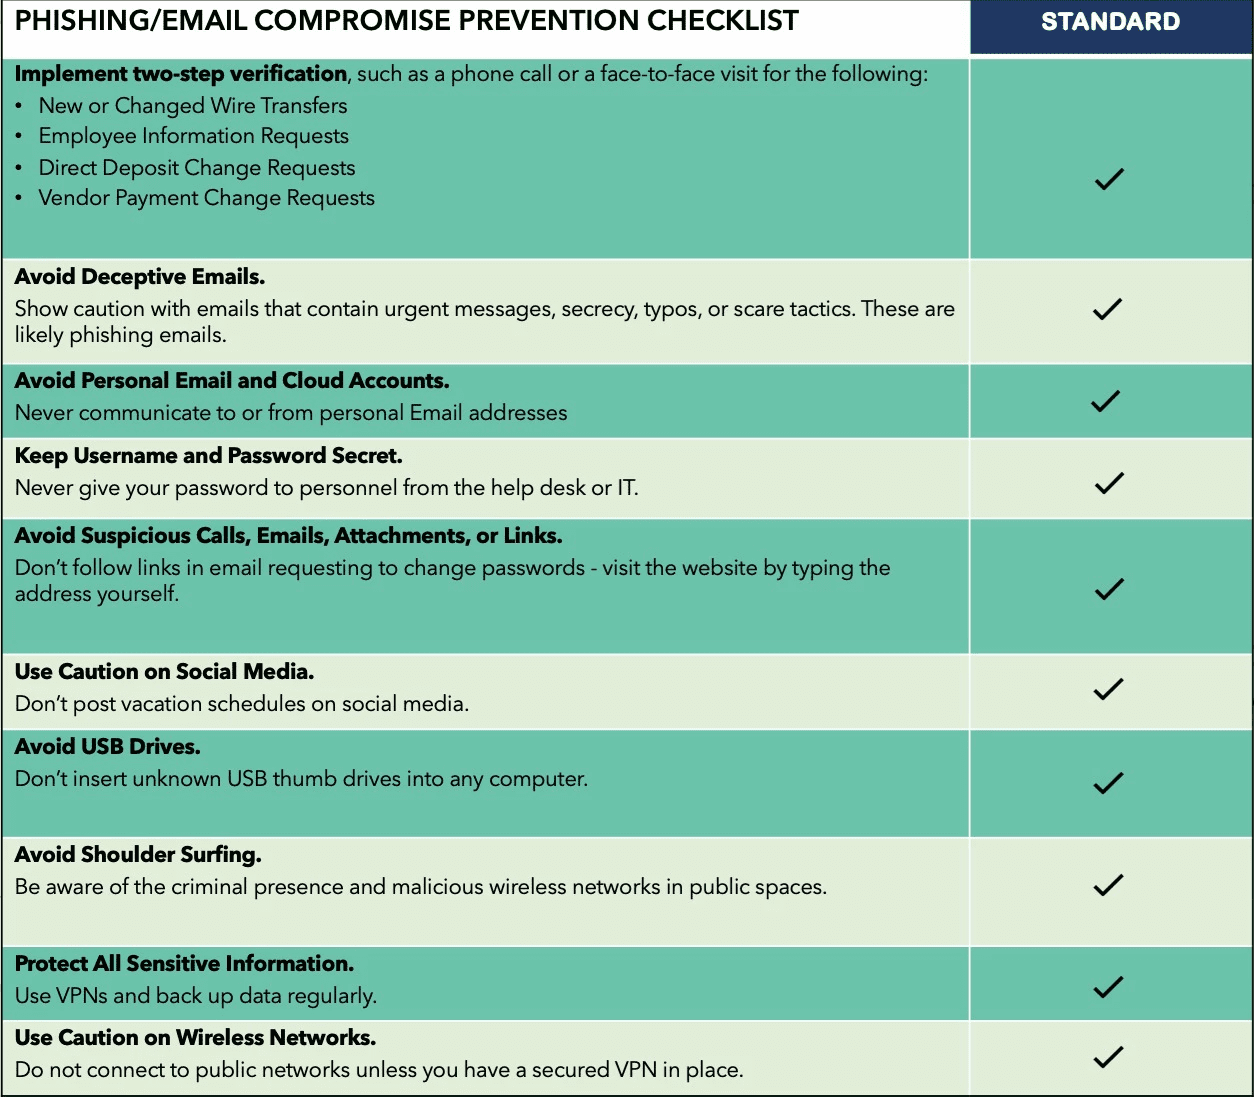 Phishing / email compromise prevention checklist.